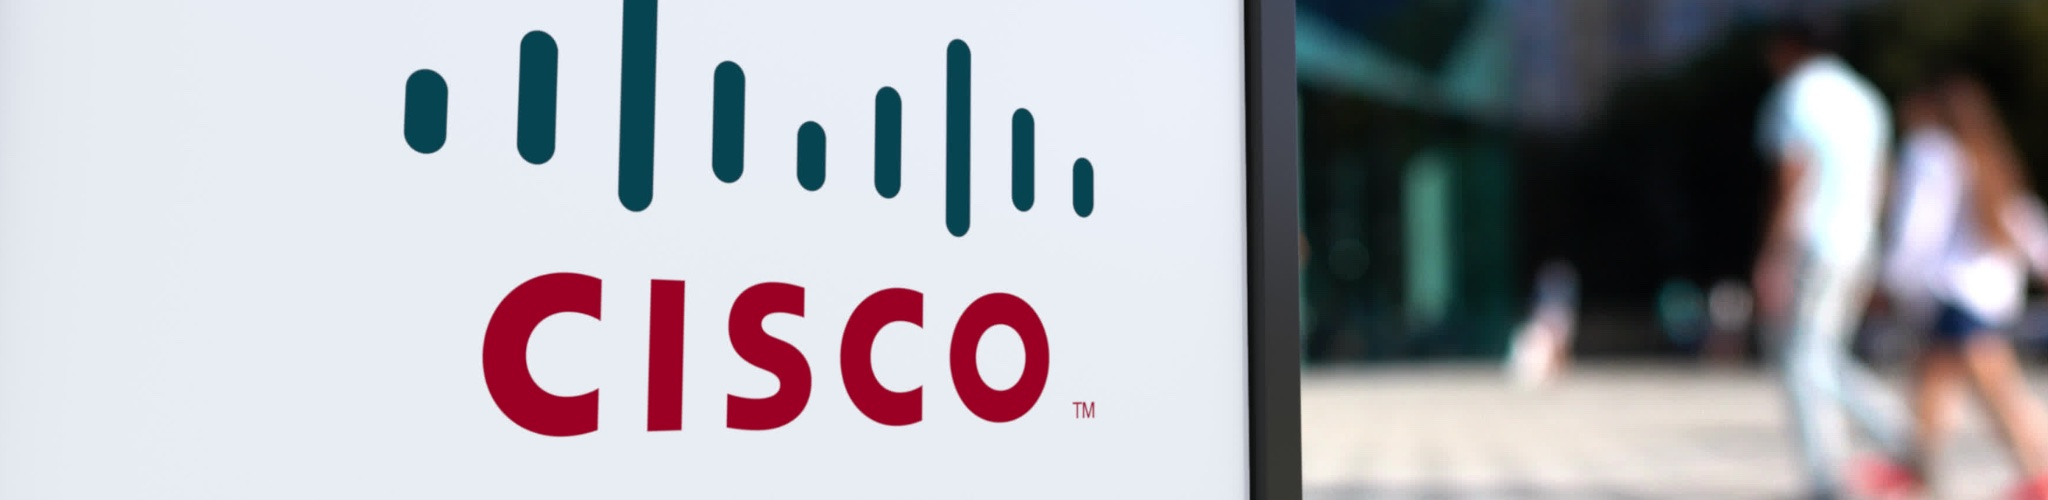 Cisco is simplifying their security portfolio with SecureX